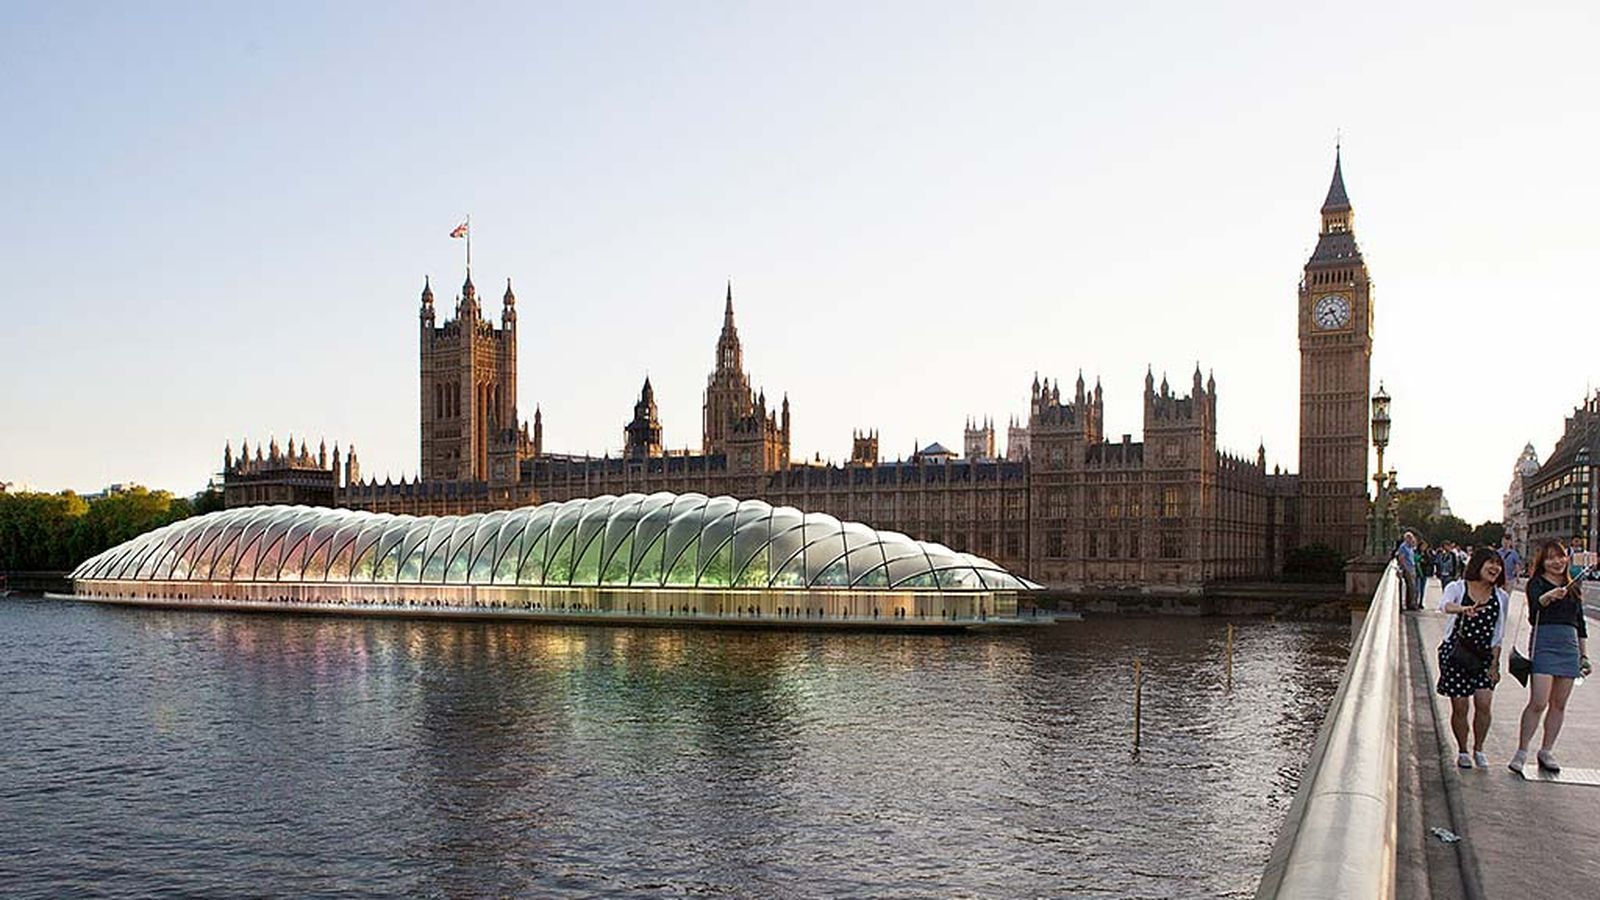 Westminster palace has to repaired, so parliament needs to go somewhere else. Gensler says their raft would save the project more than $2 billion.